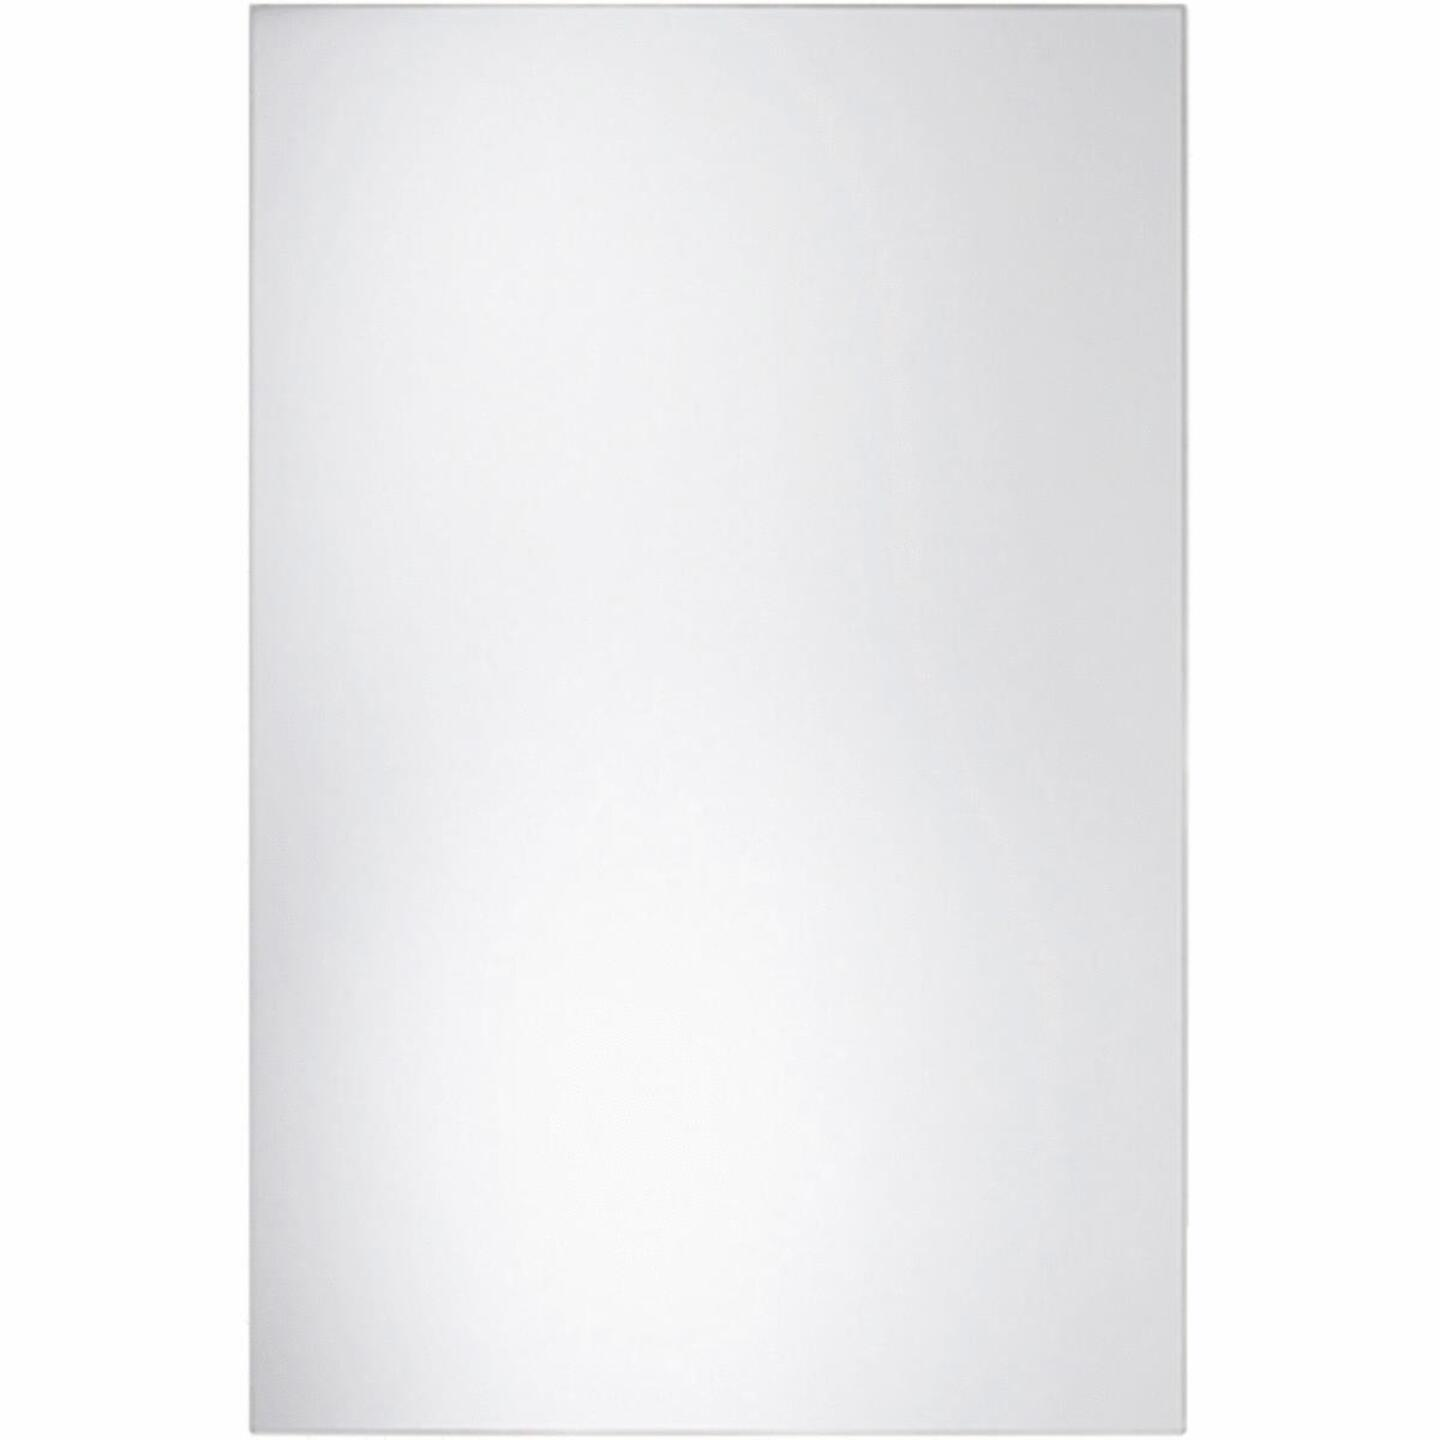 Erias Home Design 36 In. W. x 42 In. H. Frameless Polished Edge Wall Mirror Image 1